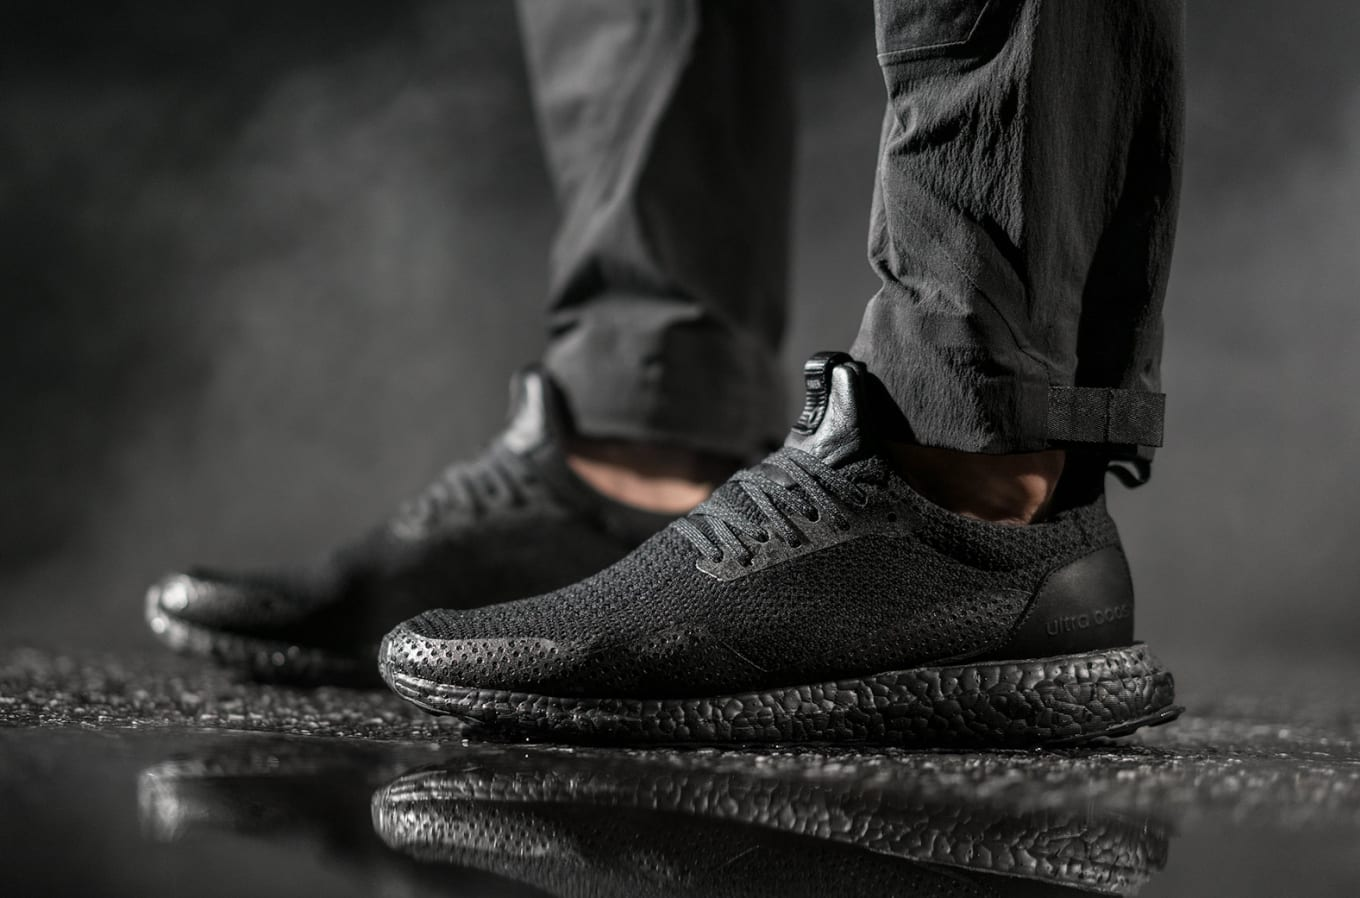 Madness x Adidas Ultra Boost Images | Sole Collector